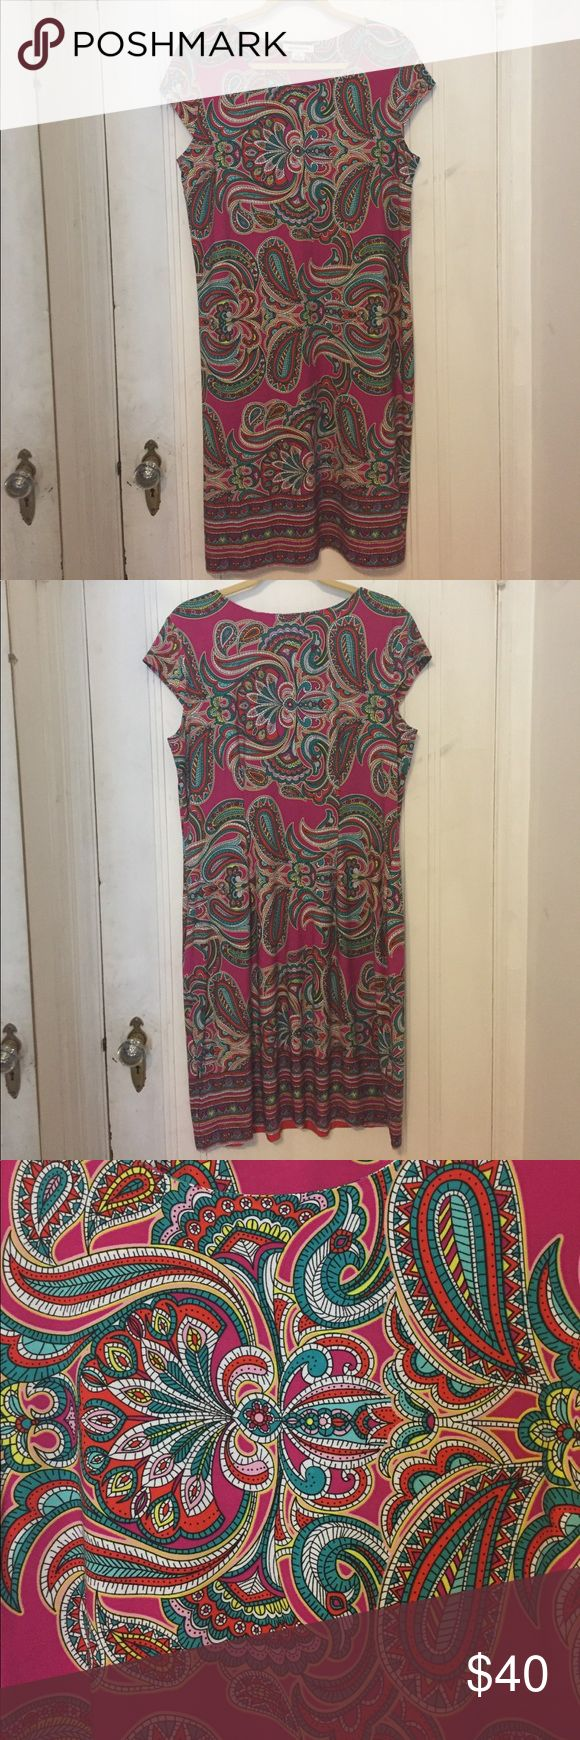 Colorful Liz Claiborne Sheath Everyone will know that you're ready for Spring in this sheath dress in pinks, greens, yellows and oranges. It is NWOT, I've never worn it and it's in perfect condition. Liz Claiborne Dresses